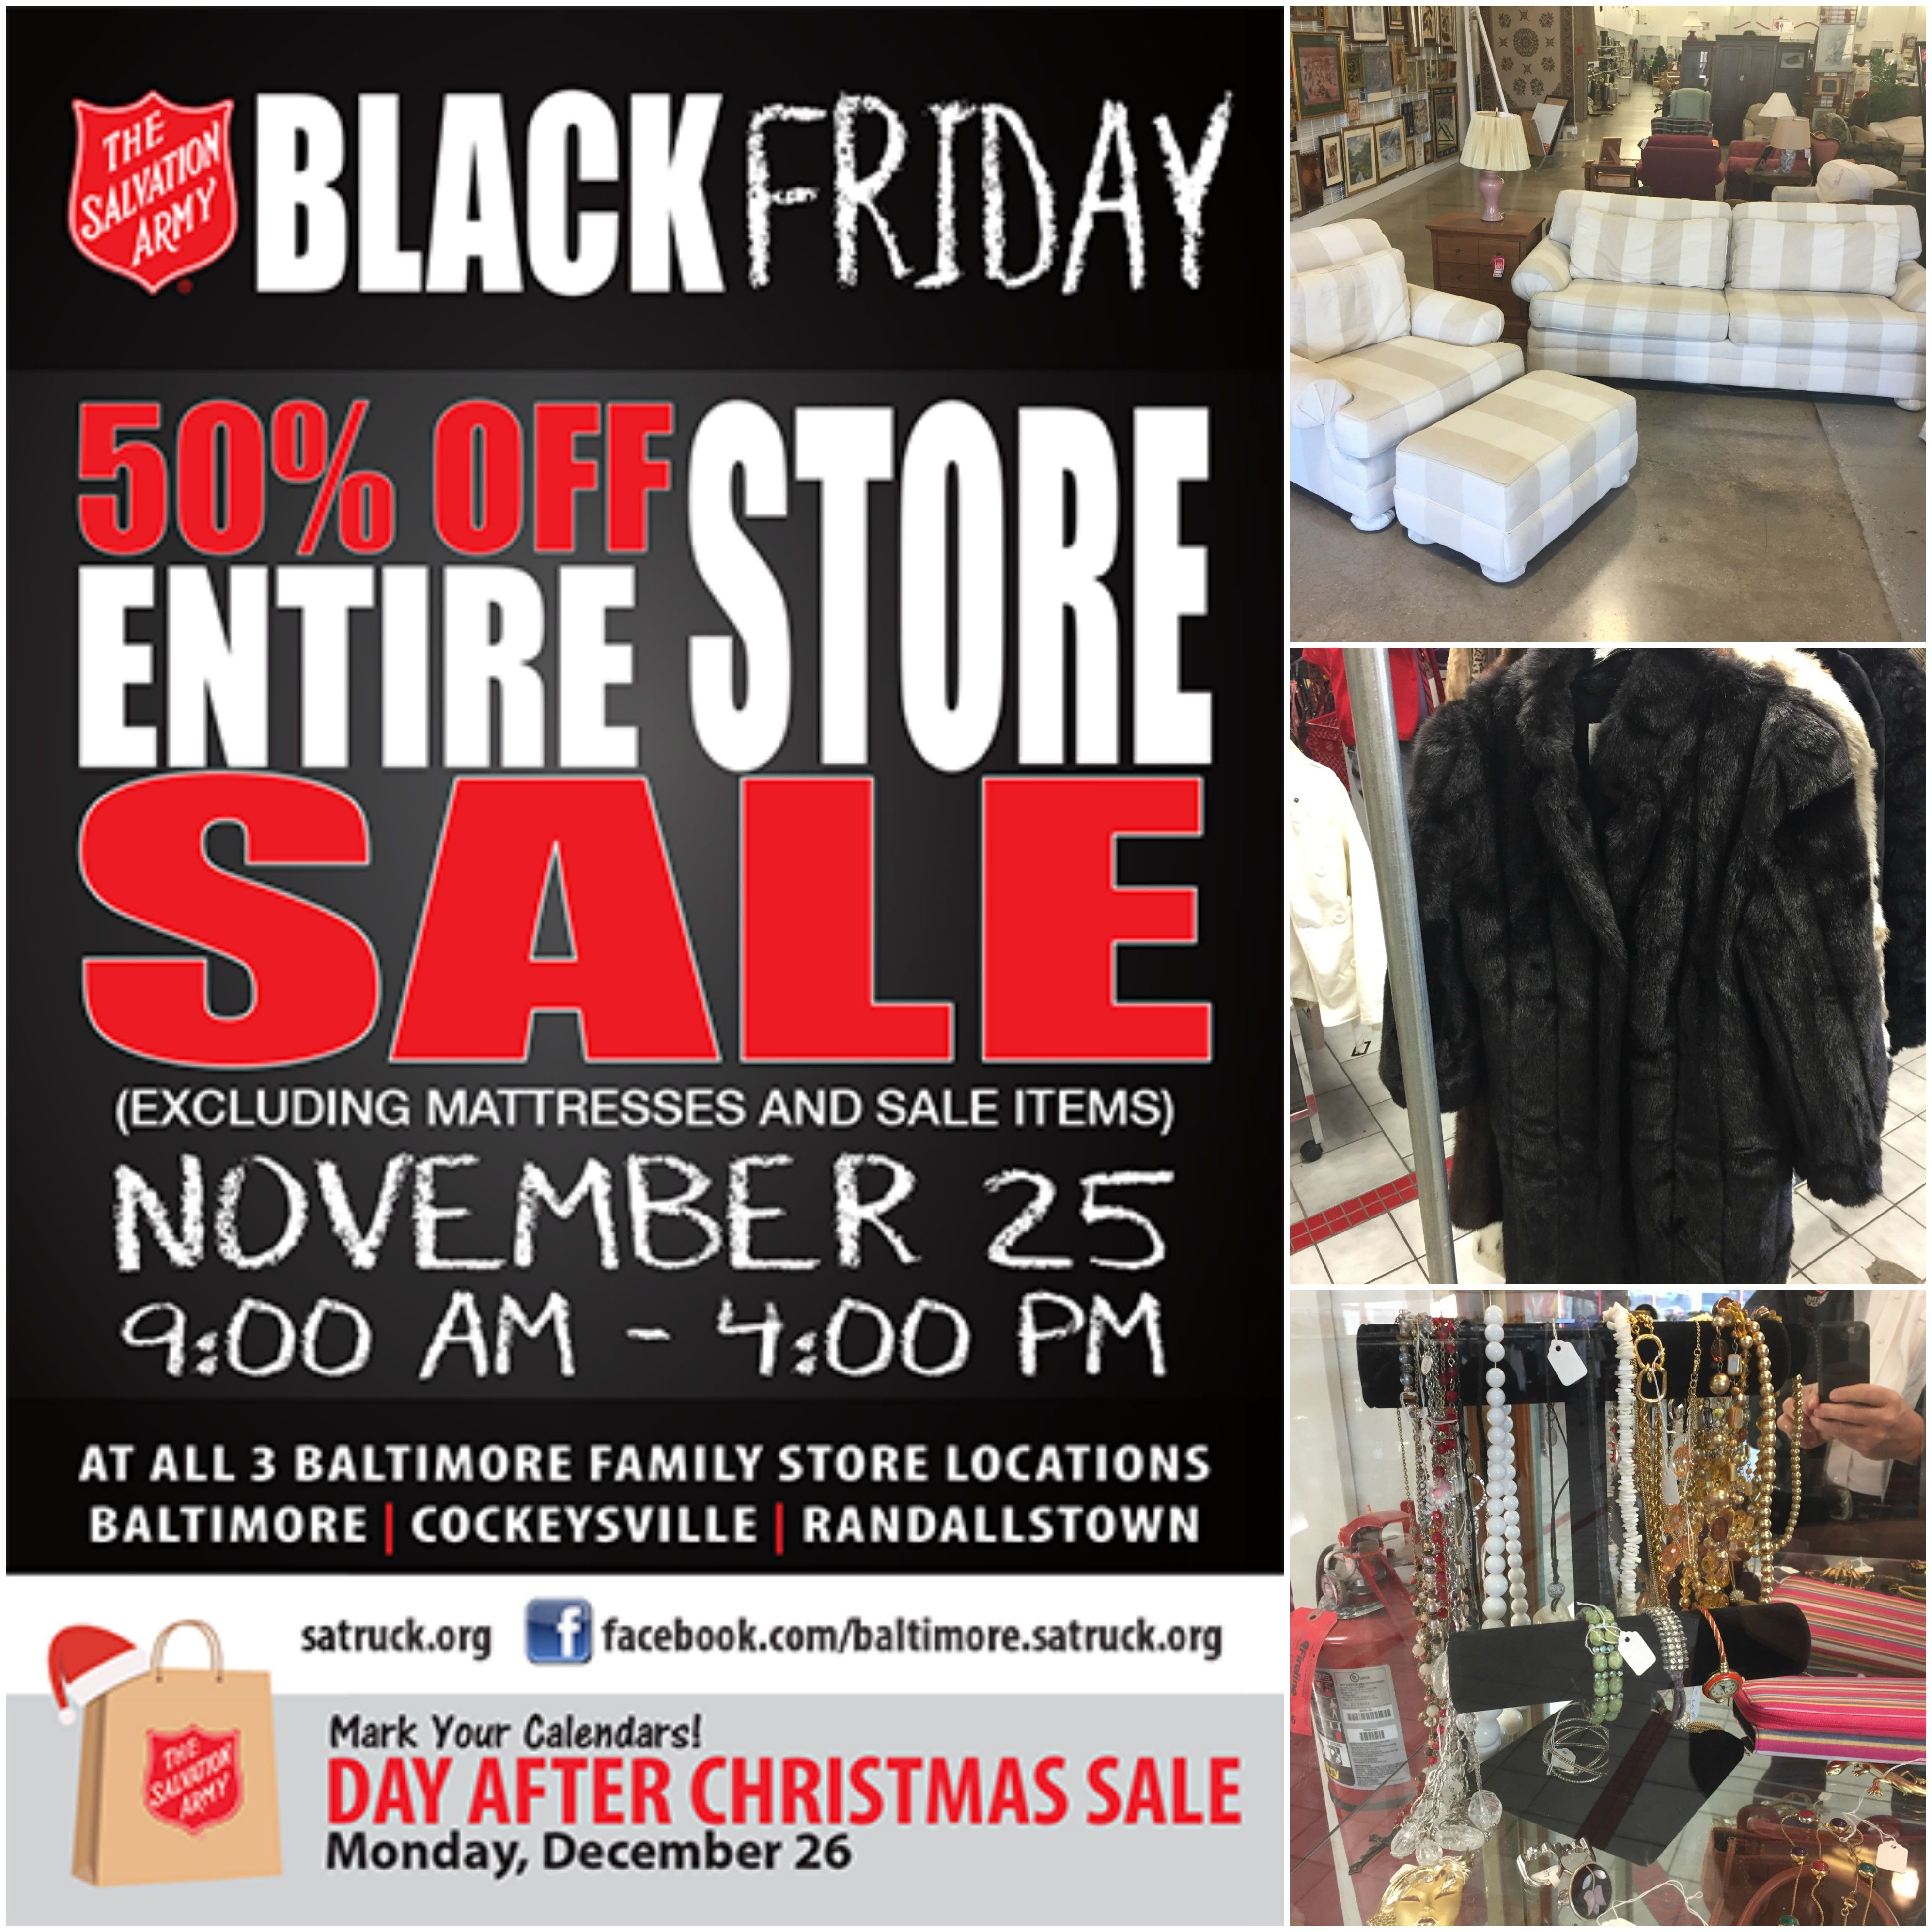 The Salvation Army Blackfriday Sale Is Going On Now Until 4 P M At All 3 Baltimore Family Stores Come In To See What You Will Salvation Army Army Salvation